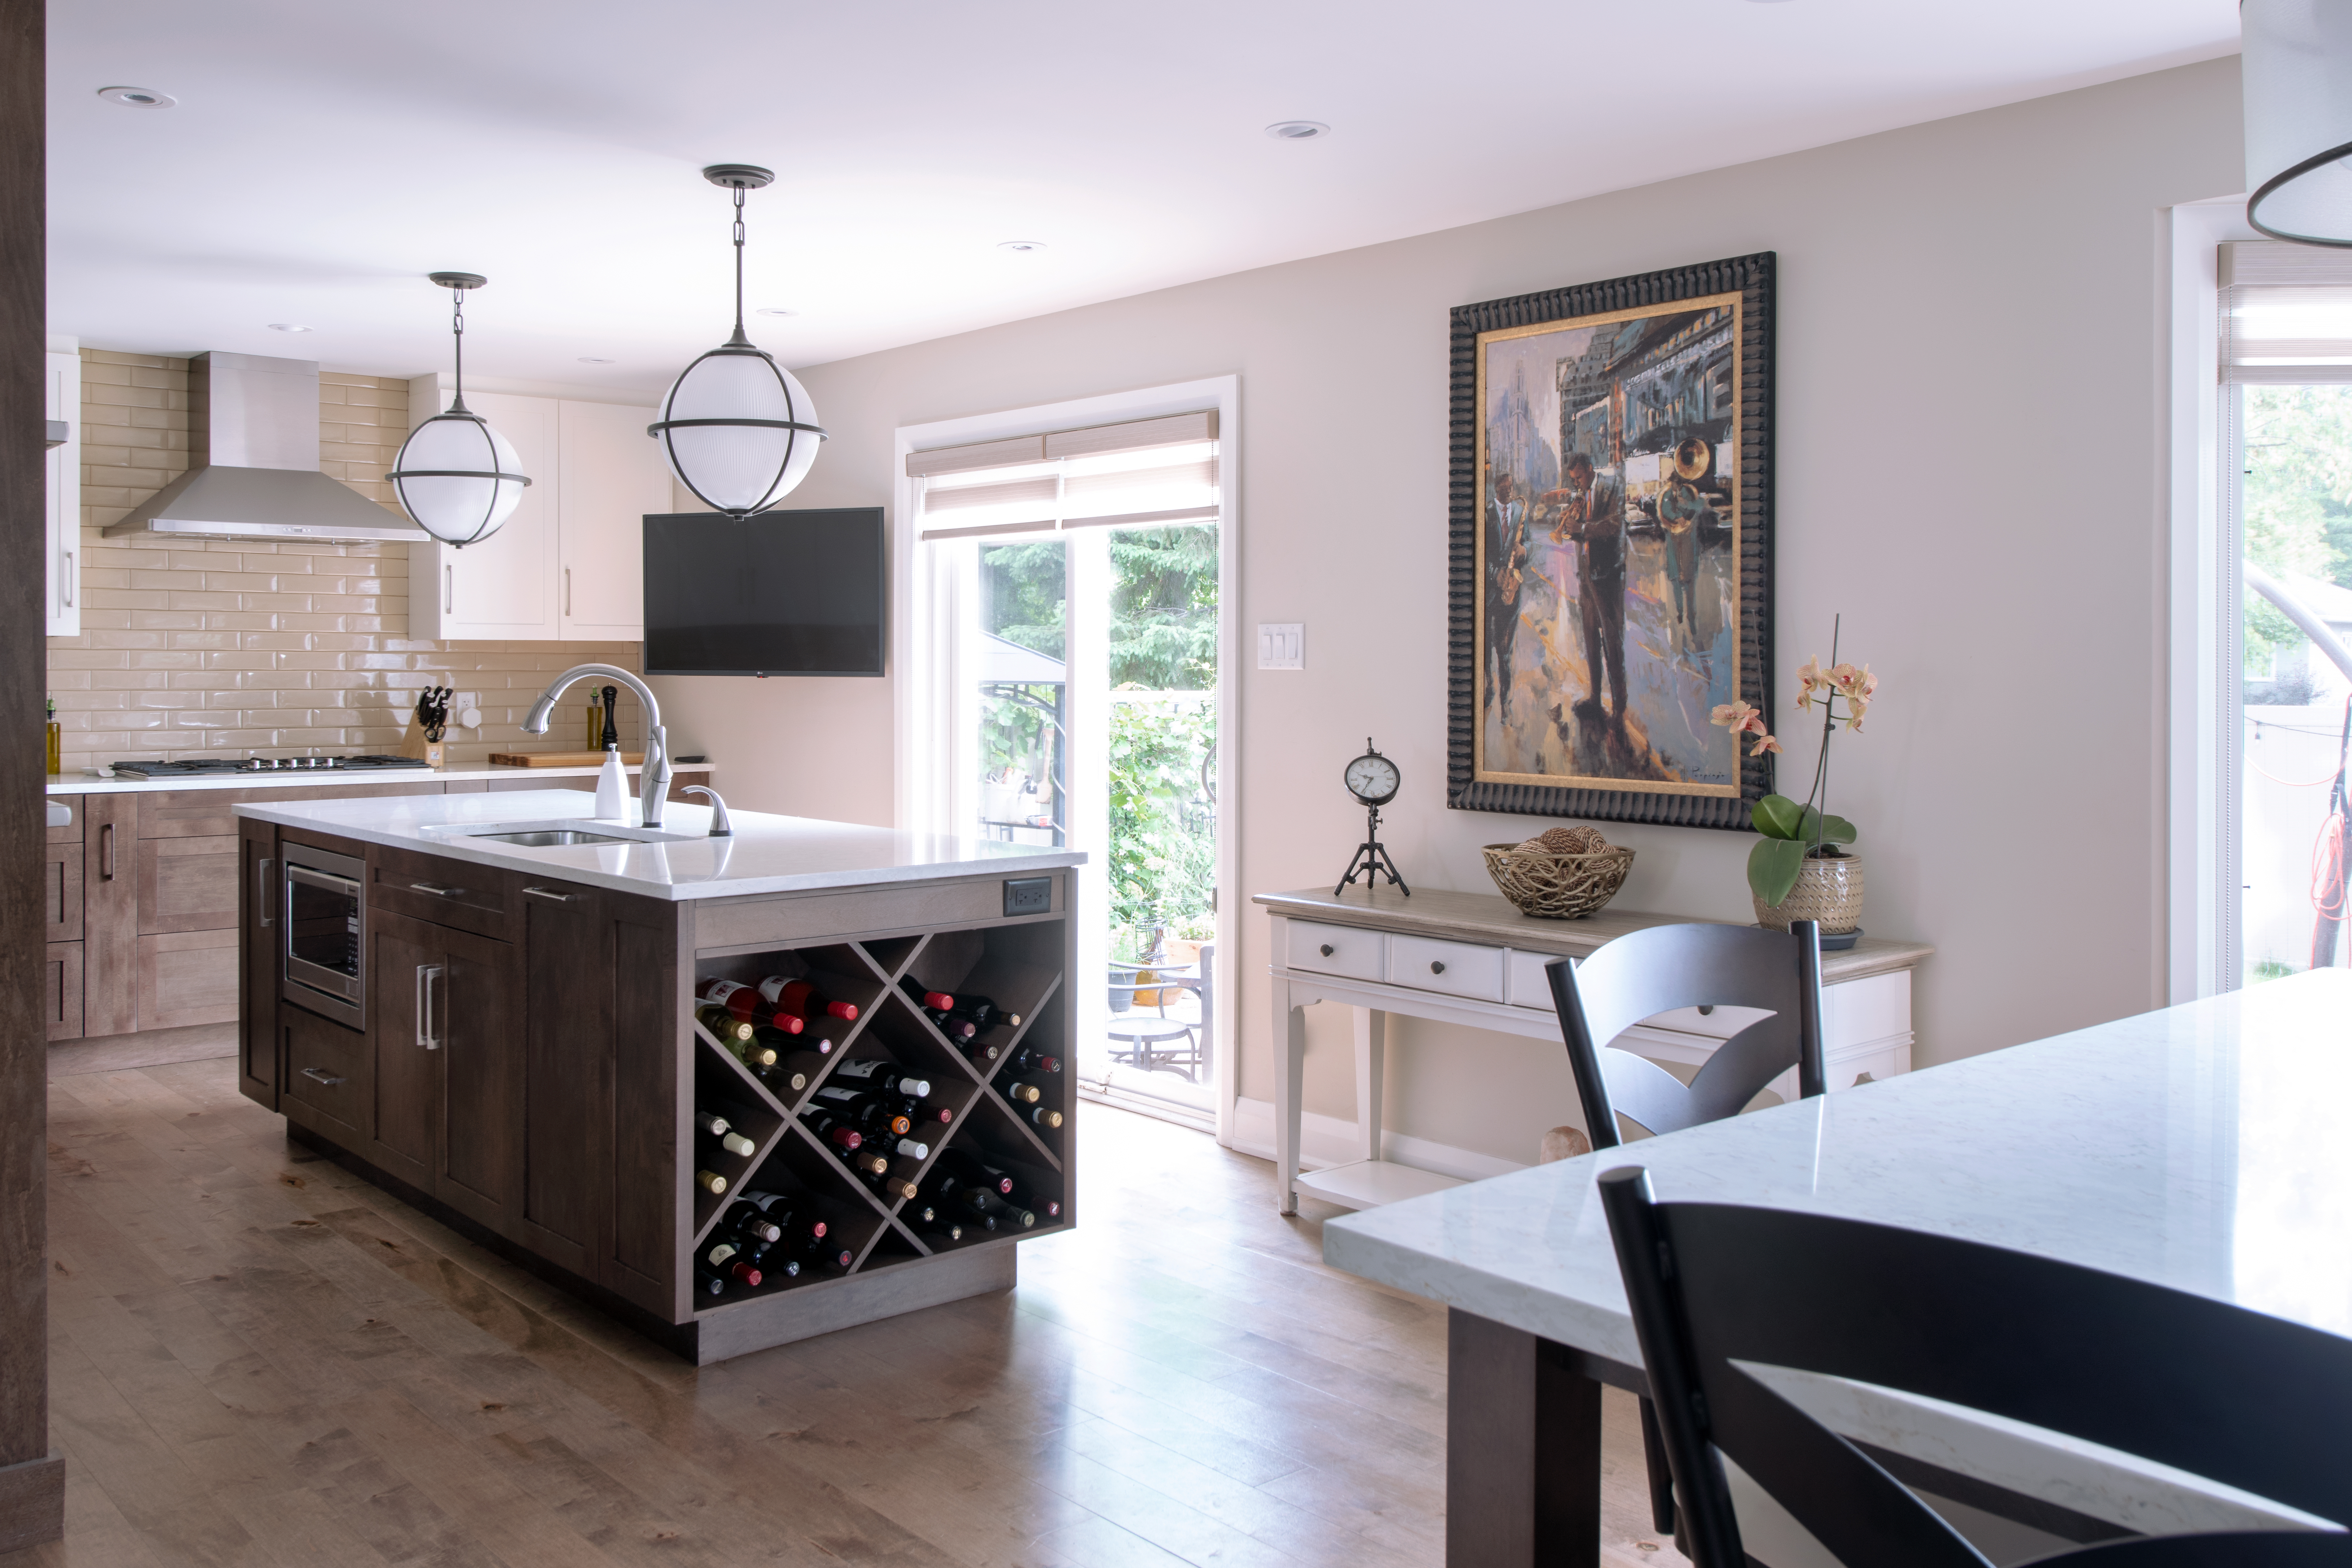 A kitchen island with a recessed toe kick.